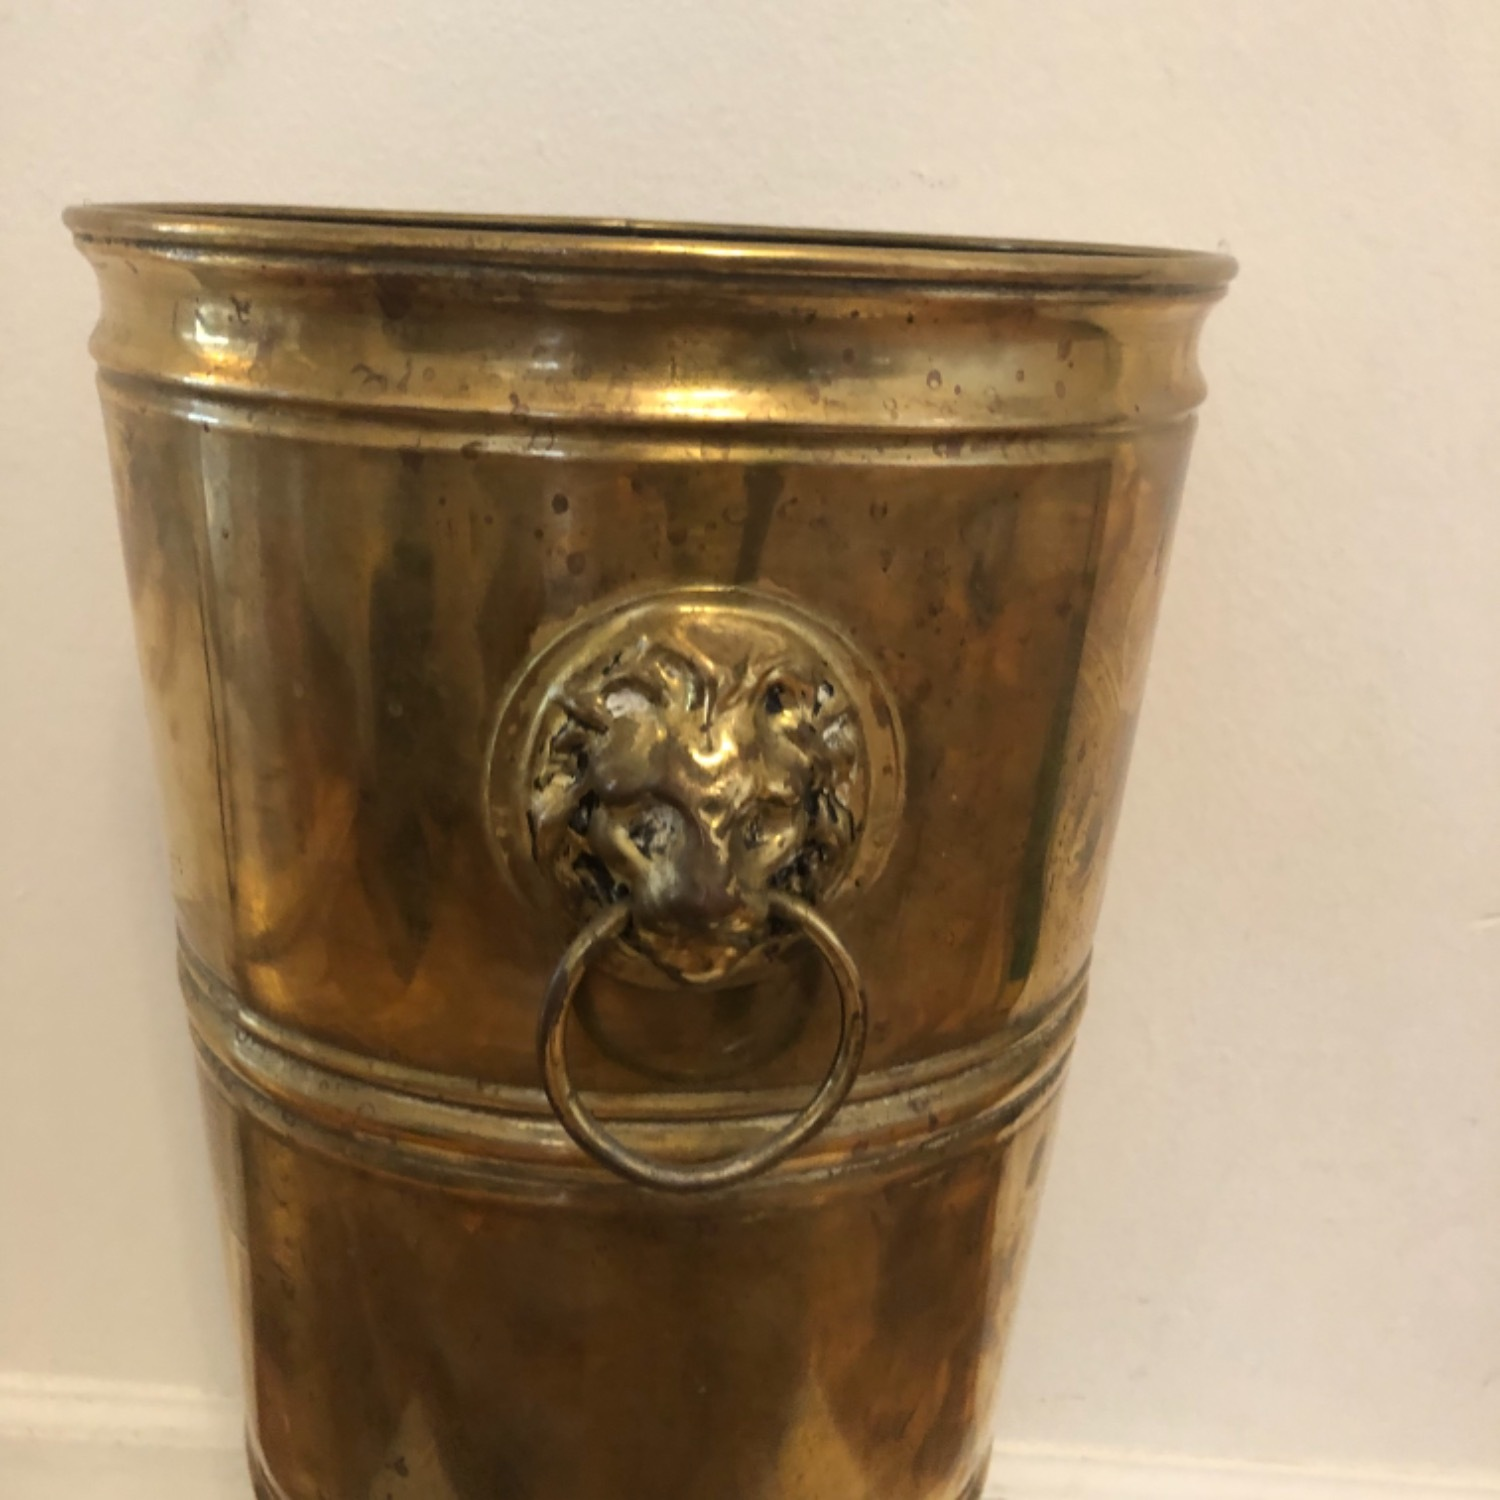 Brass Umbrella Cane Stand with Lion Heads - image-2